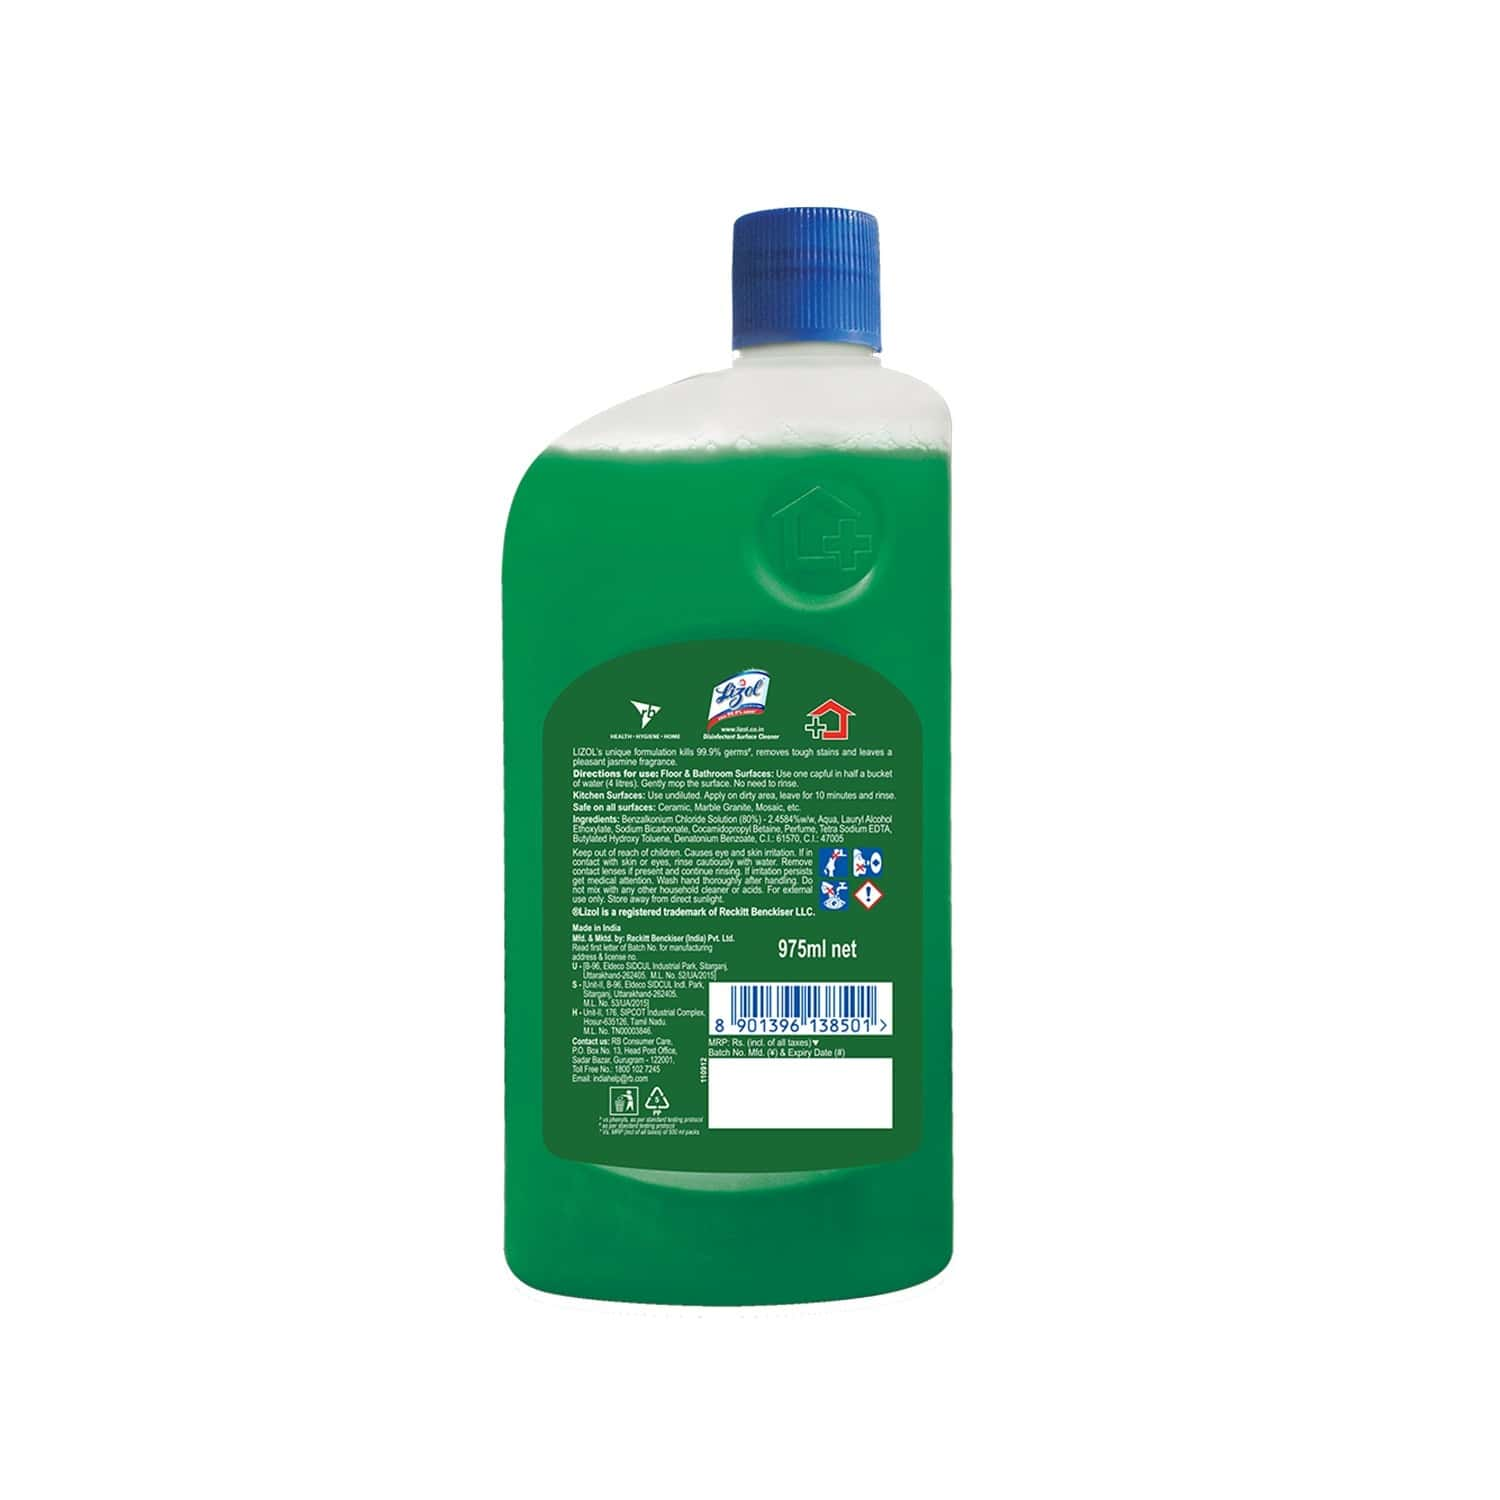 Lizol Jasmine Disinfectant Floor Cleaner Bottle Of 975 Ml